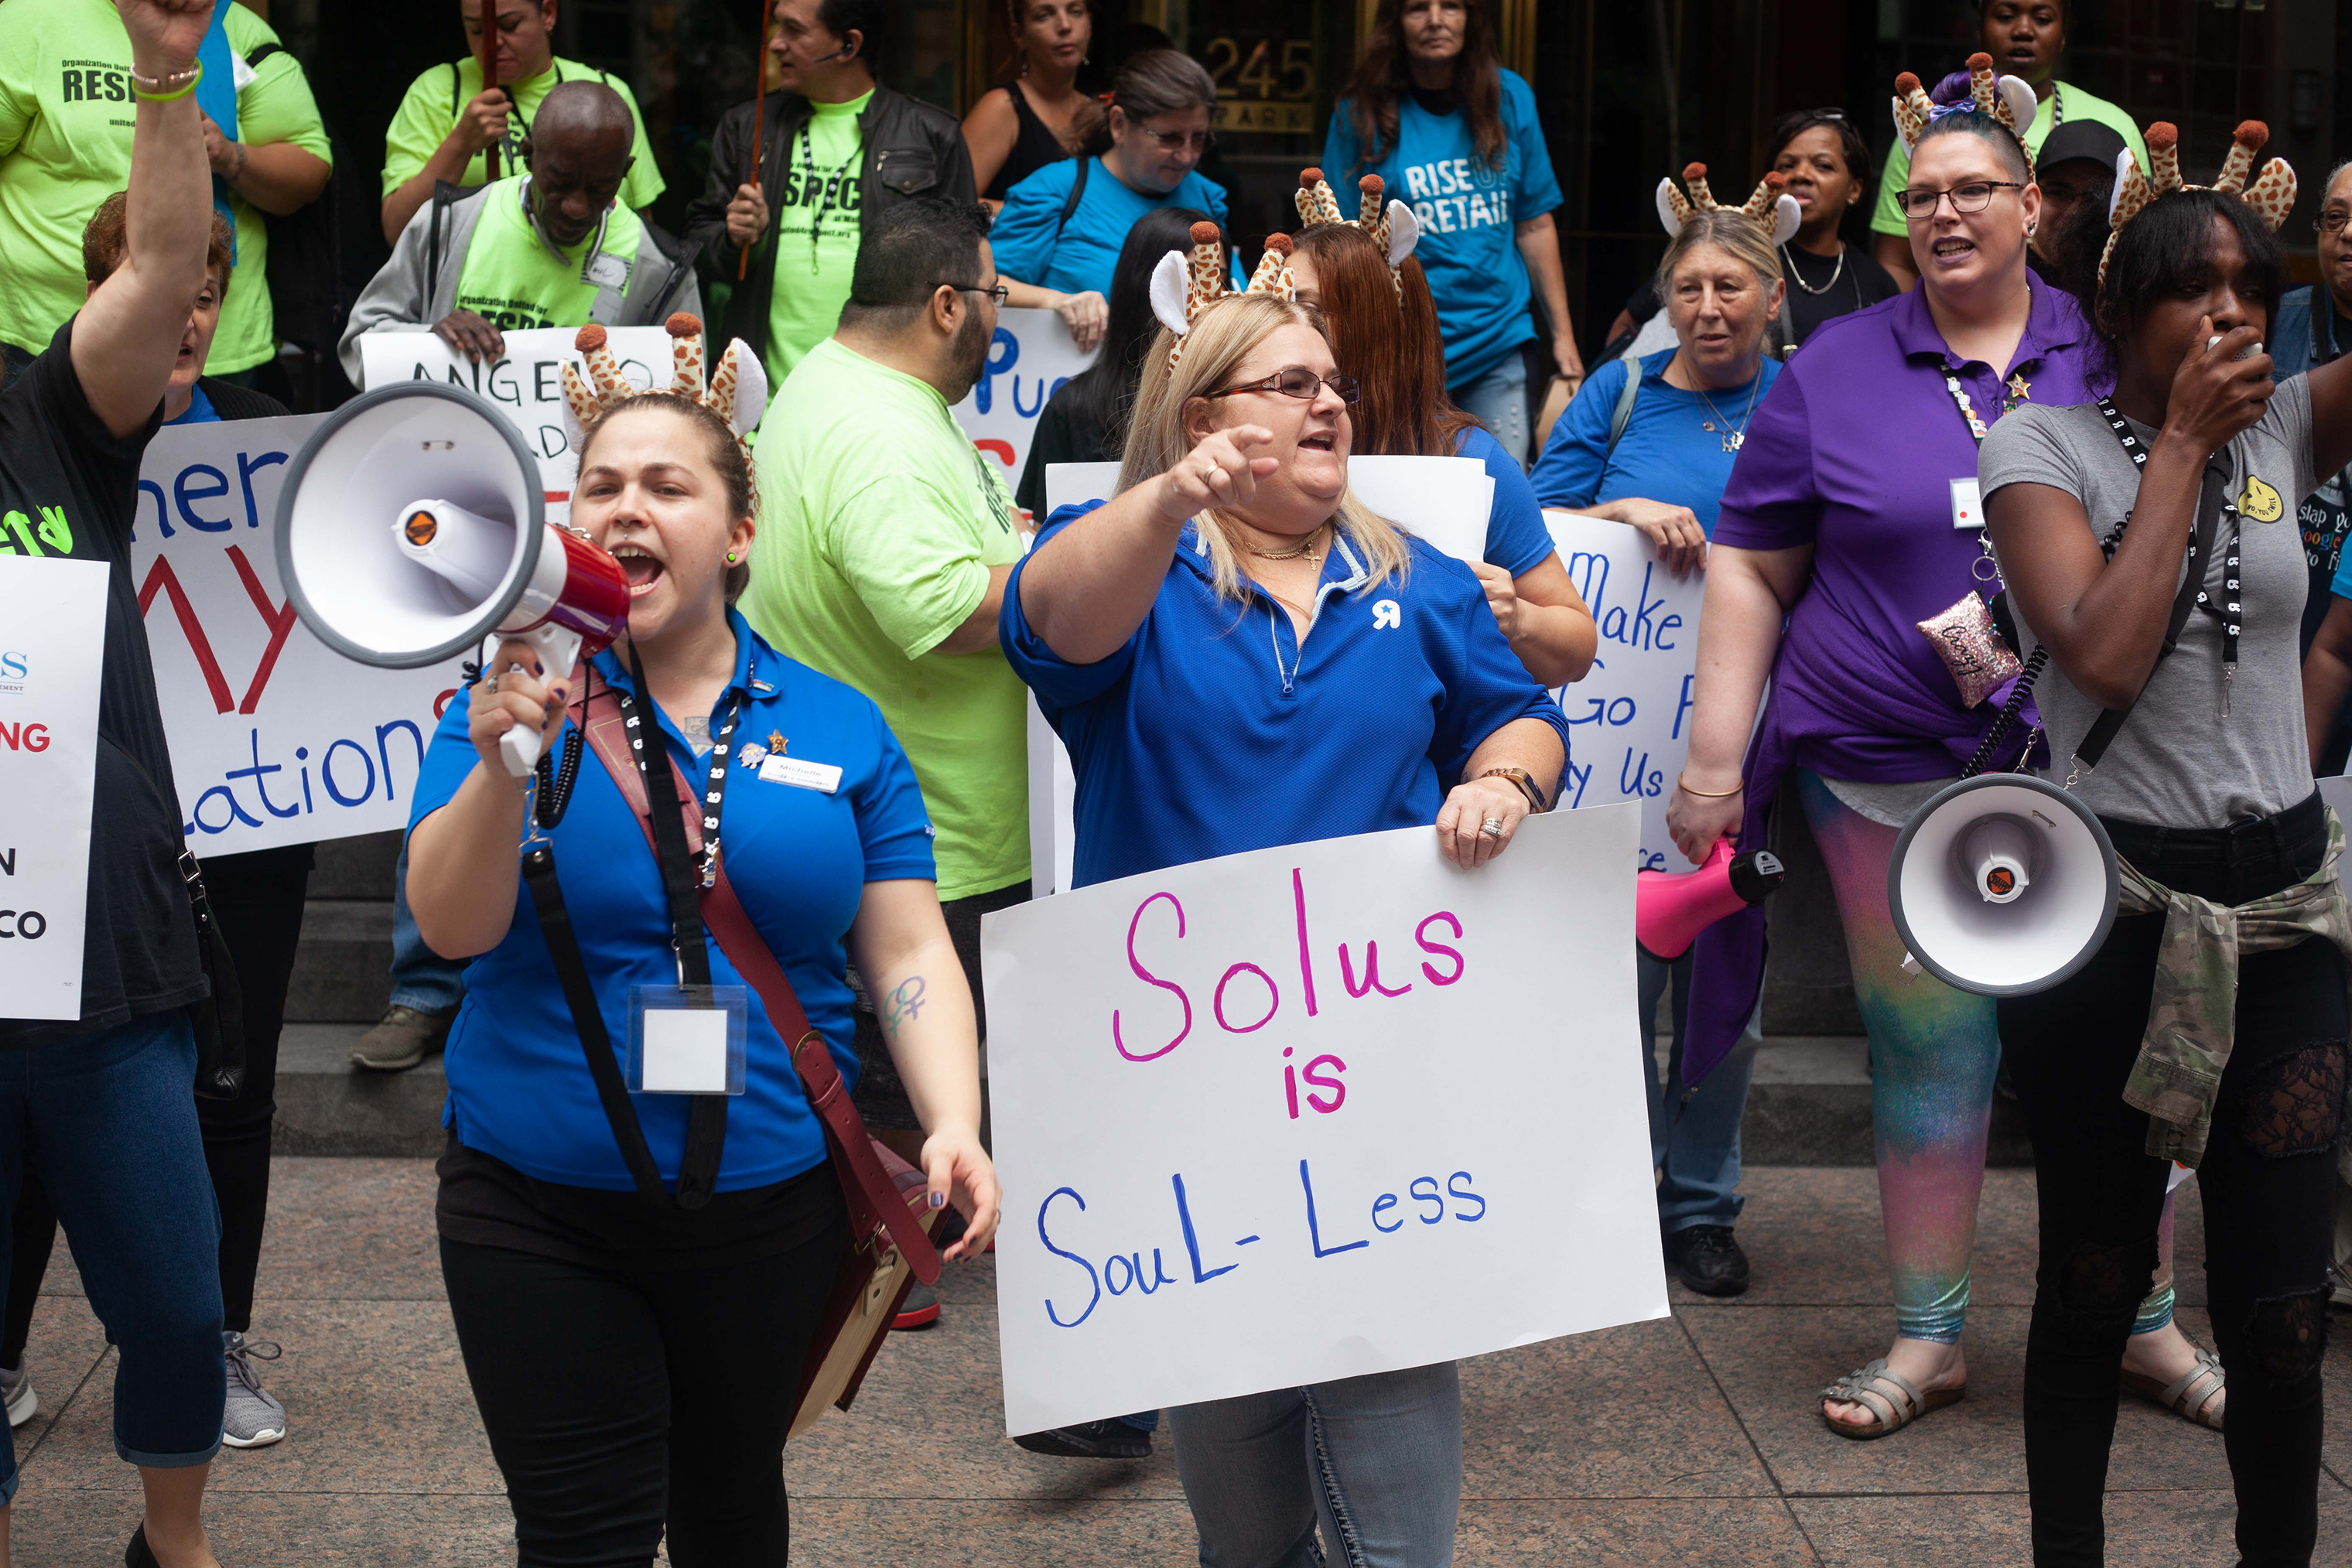 Cheryl Claude (center) and Sarah Woodhams (in purple) participate in a joint action by Organization United for Respect (OUR) Walmart leaders and Rise Up Retail leaders to protest Angelo Gordon and Solus Alternative Asset Management on Oct. 9, 2018, in NYC.